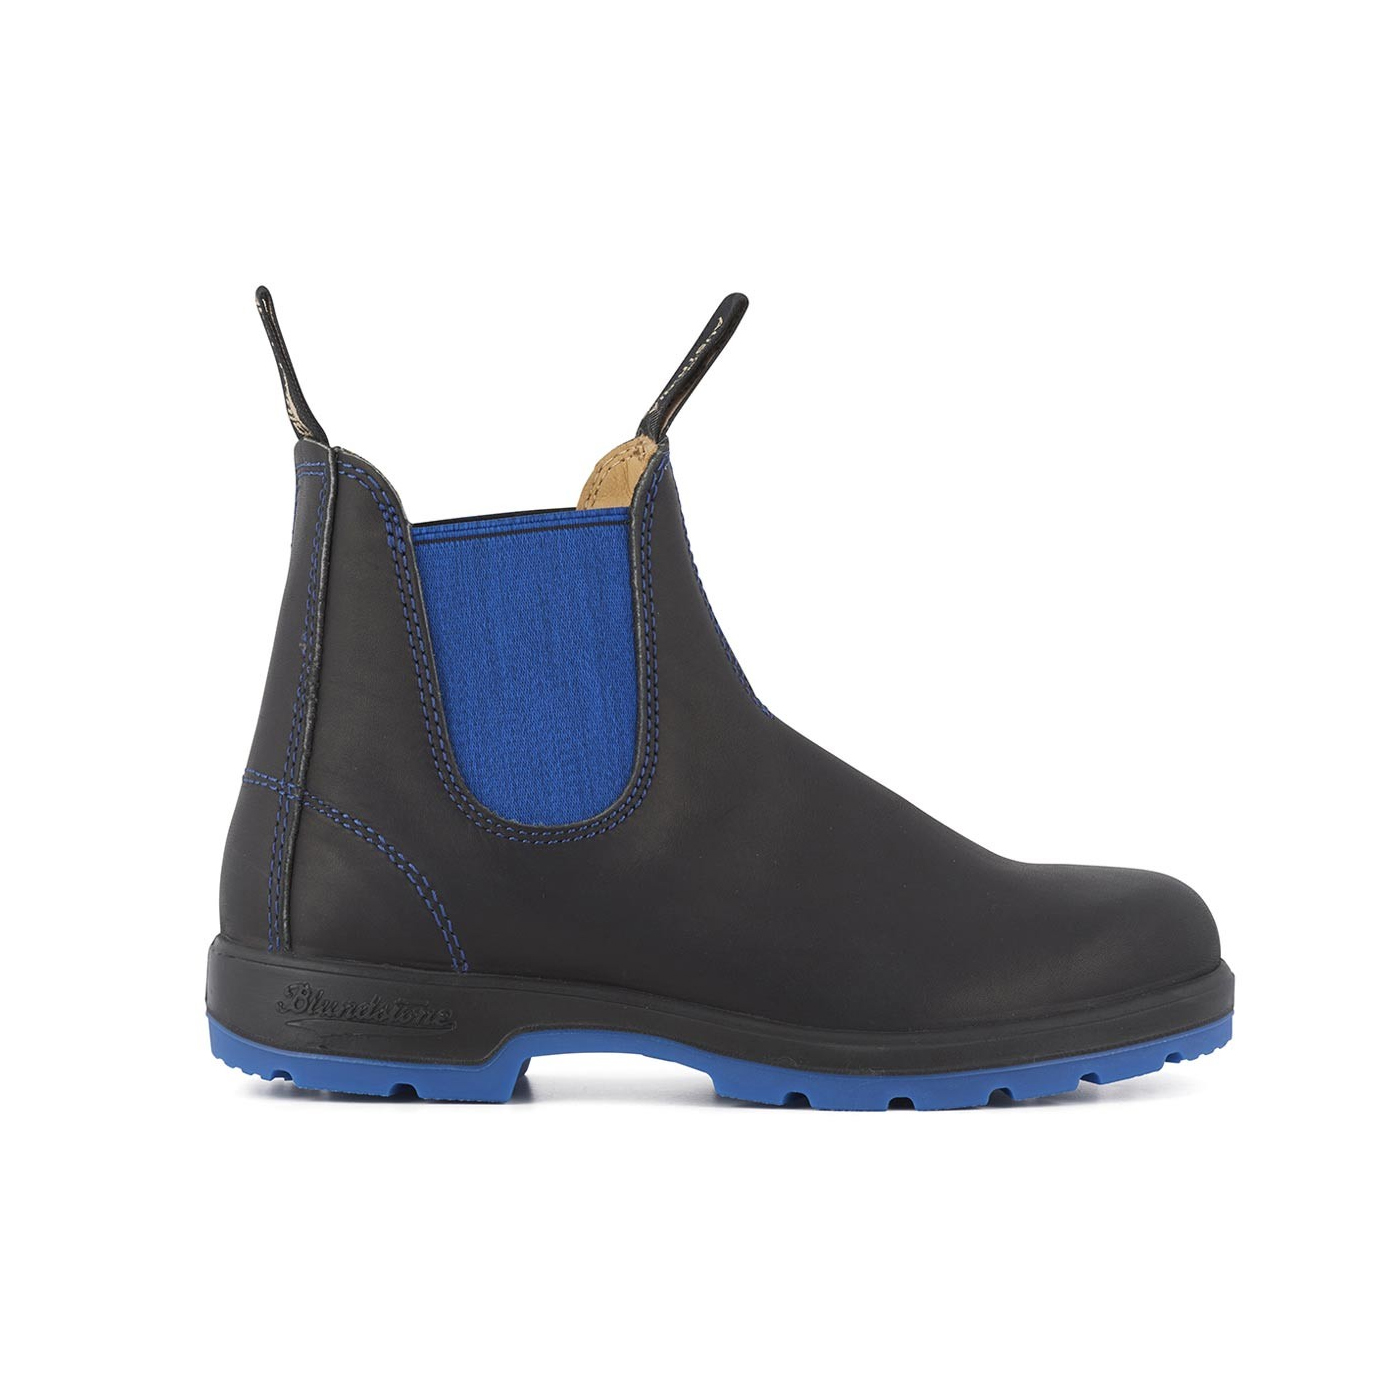 1403  Two-Tone Boots - Black / Blue